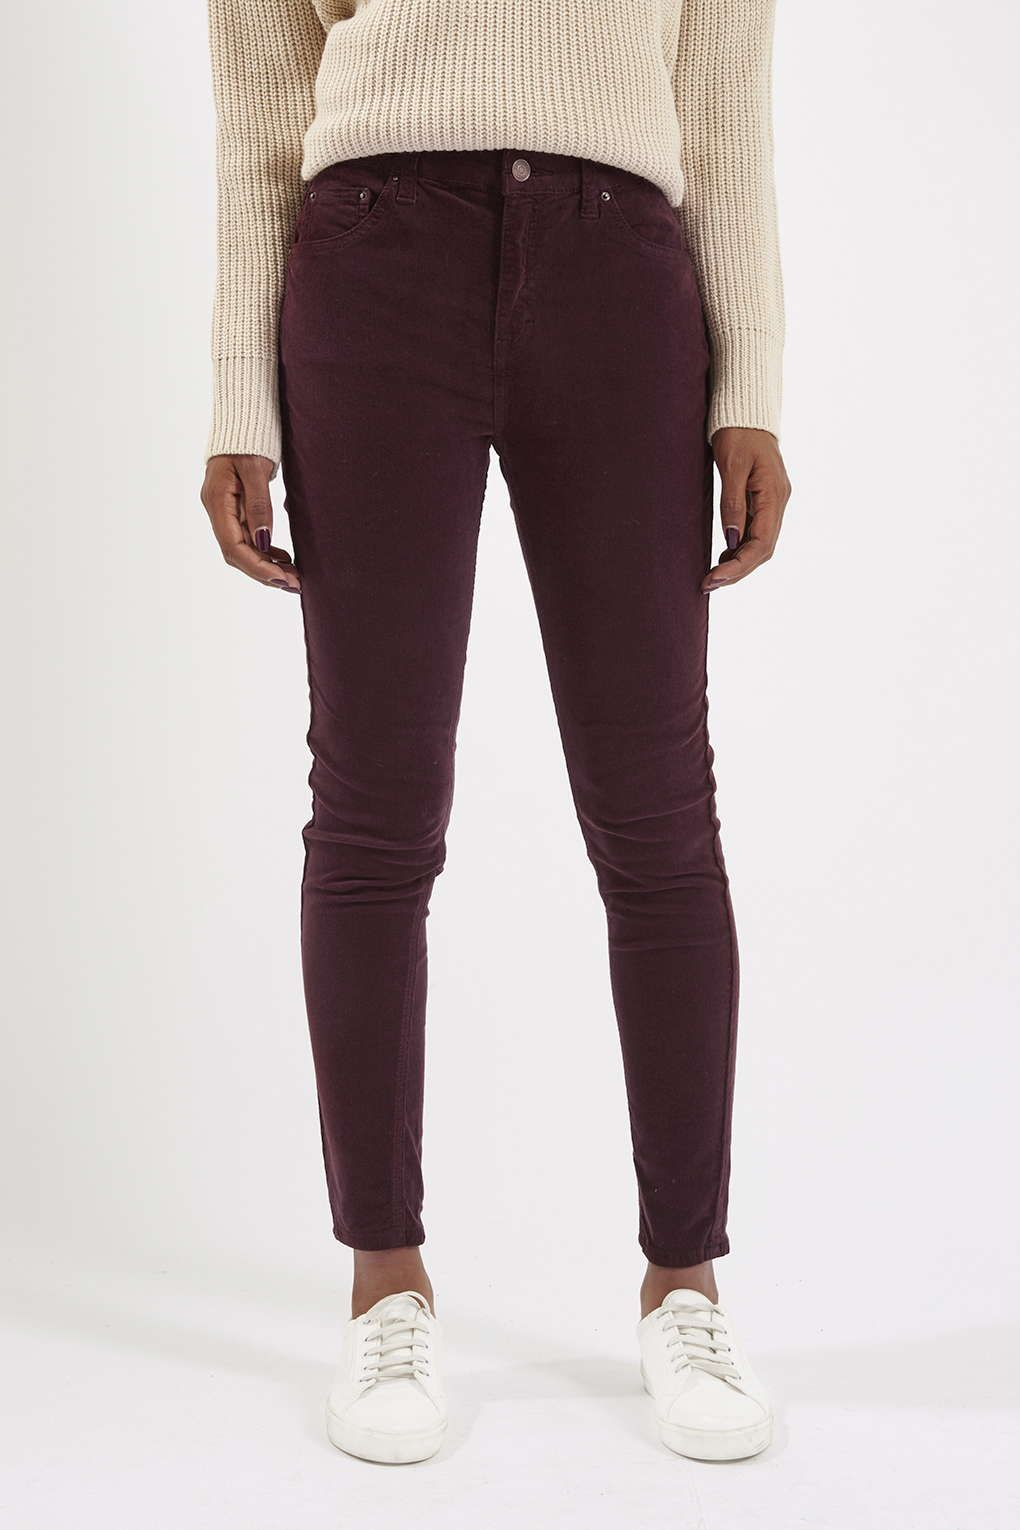 good quality various styles thoughts on MOTO Burgundy Cord Jamie Jeans | Denim skinny jeans, Burgundy ...